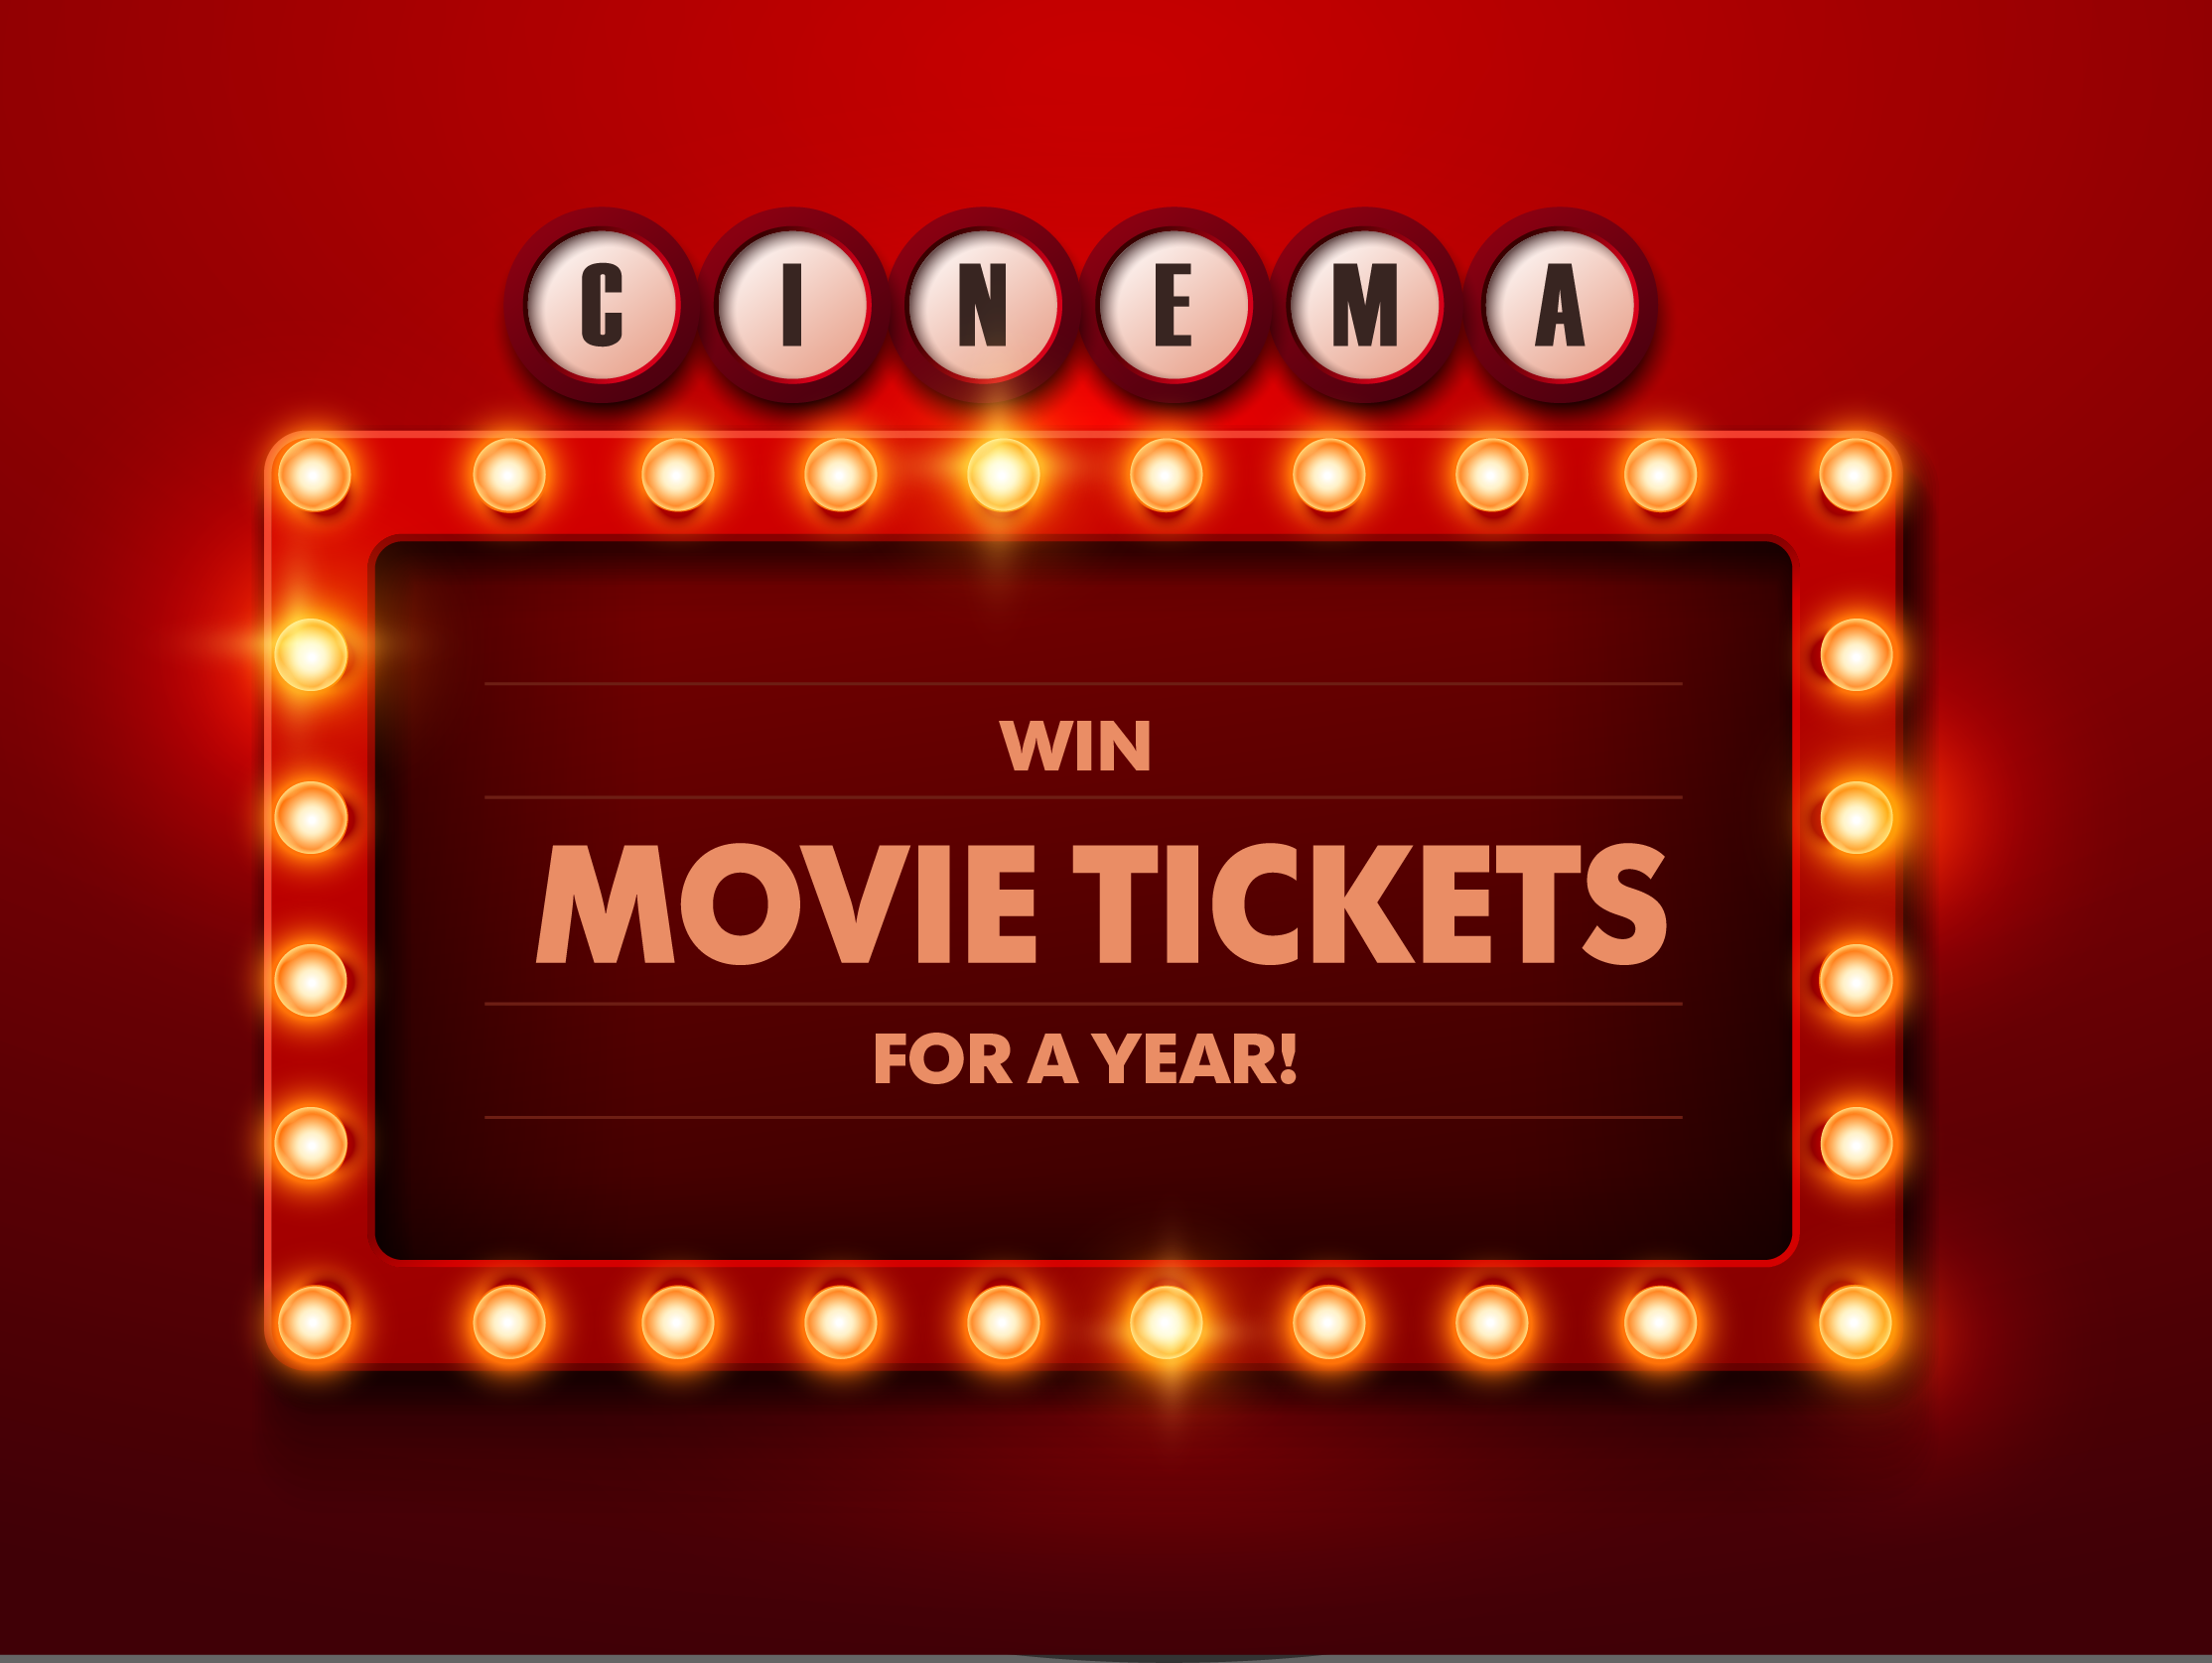 One Insider will enjoy FREE movie tickets all year long. Enter to win today!